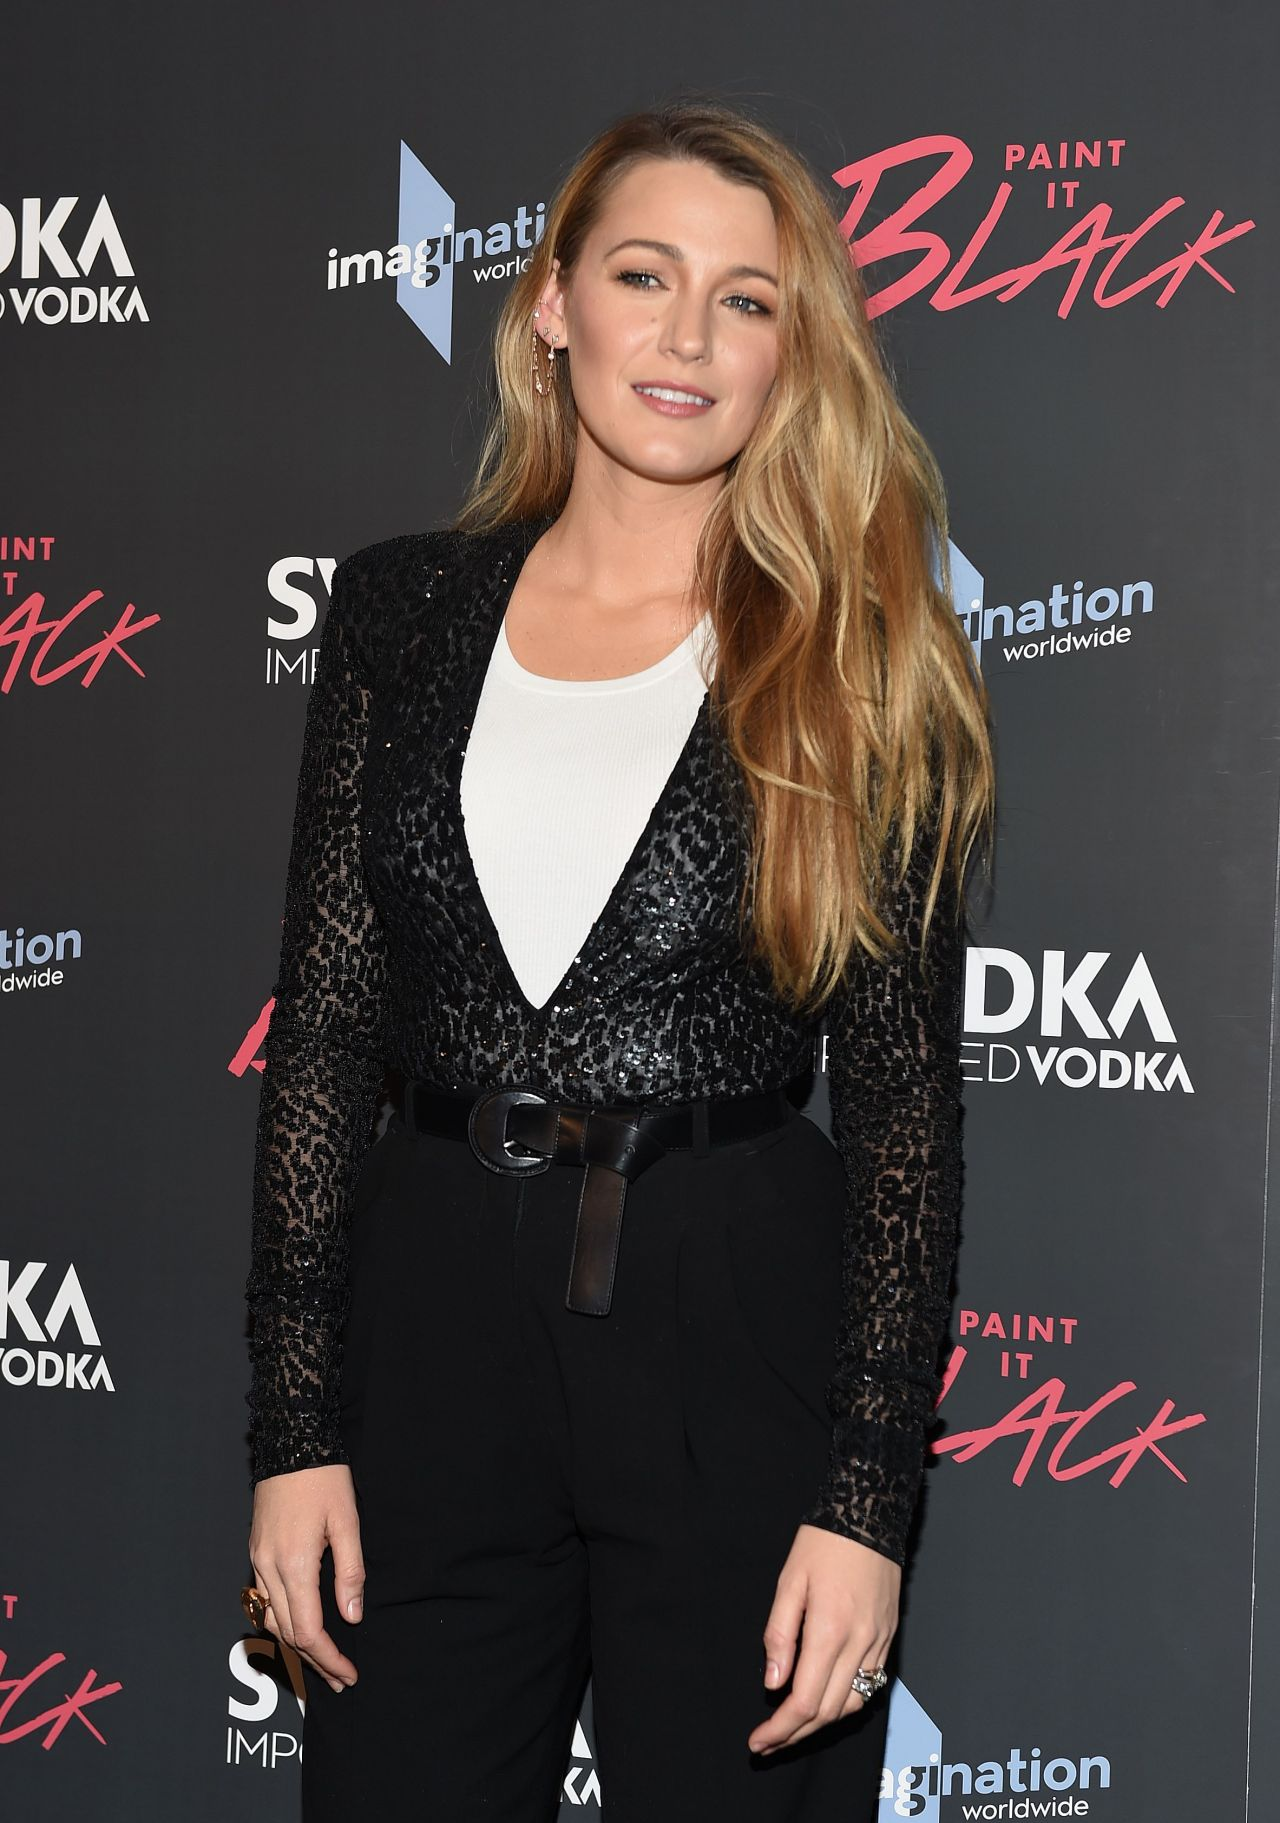 Blake Lively Paint It Black Screening In Ny 05 15 2017